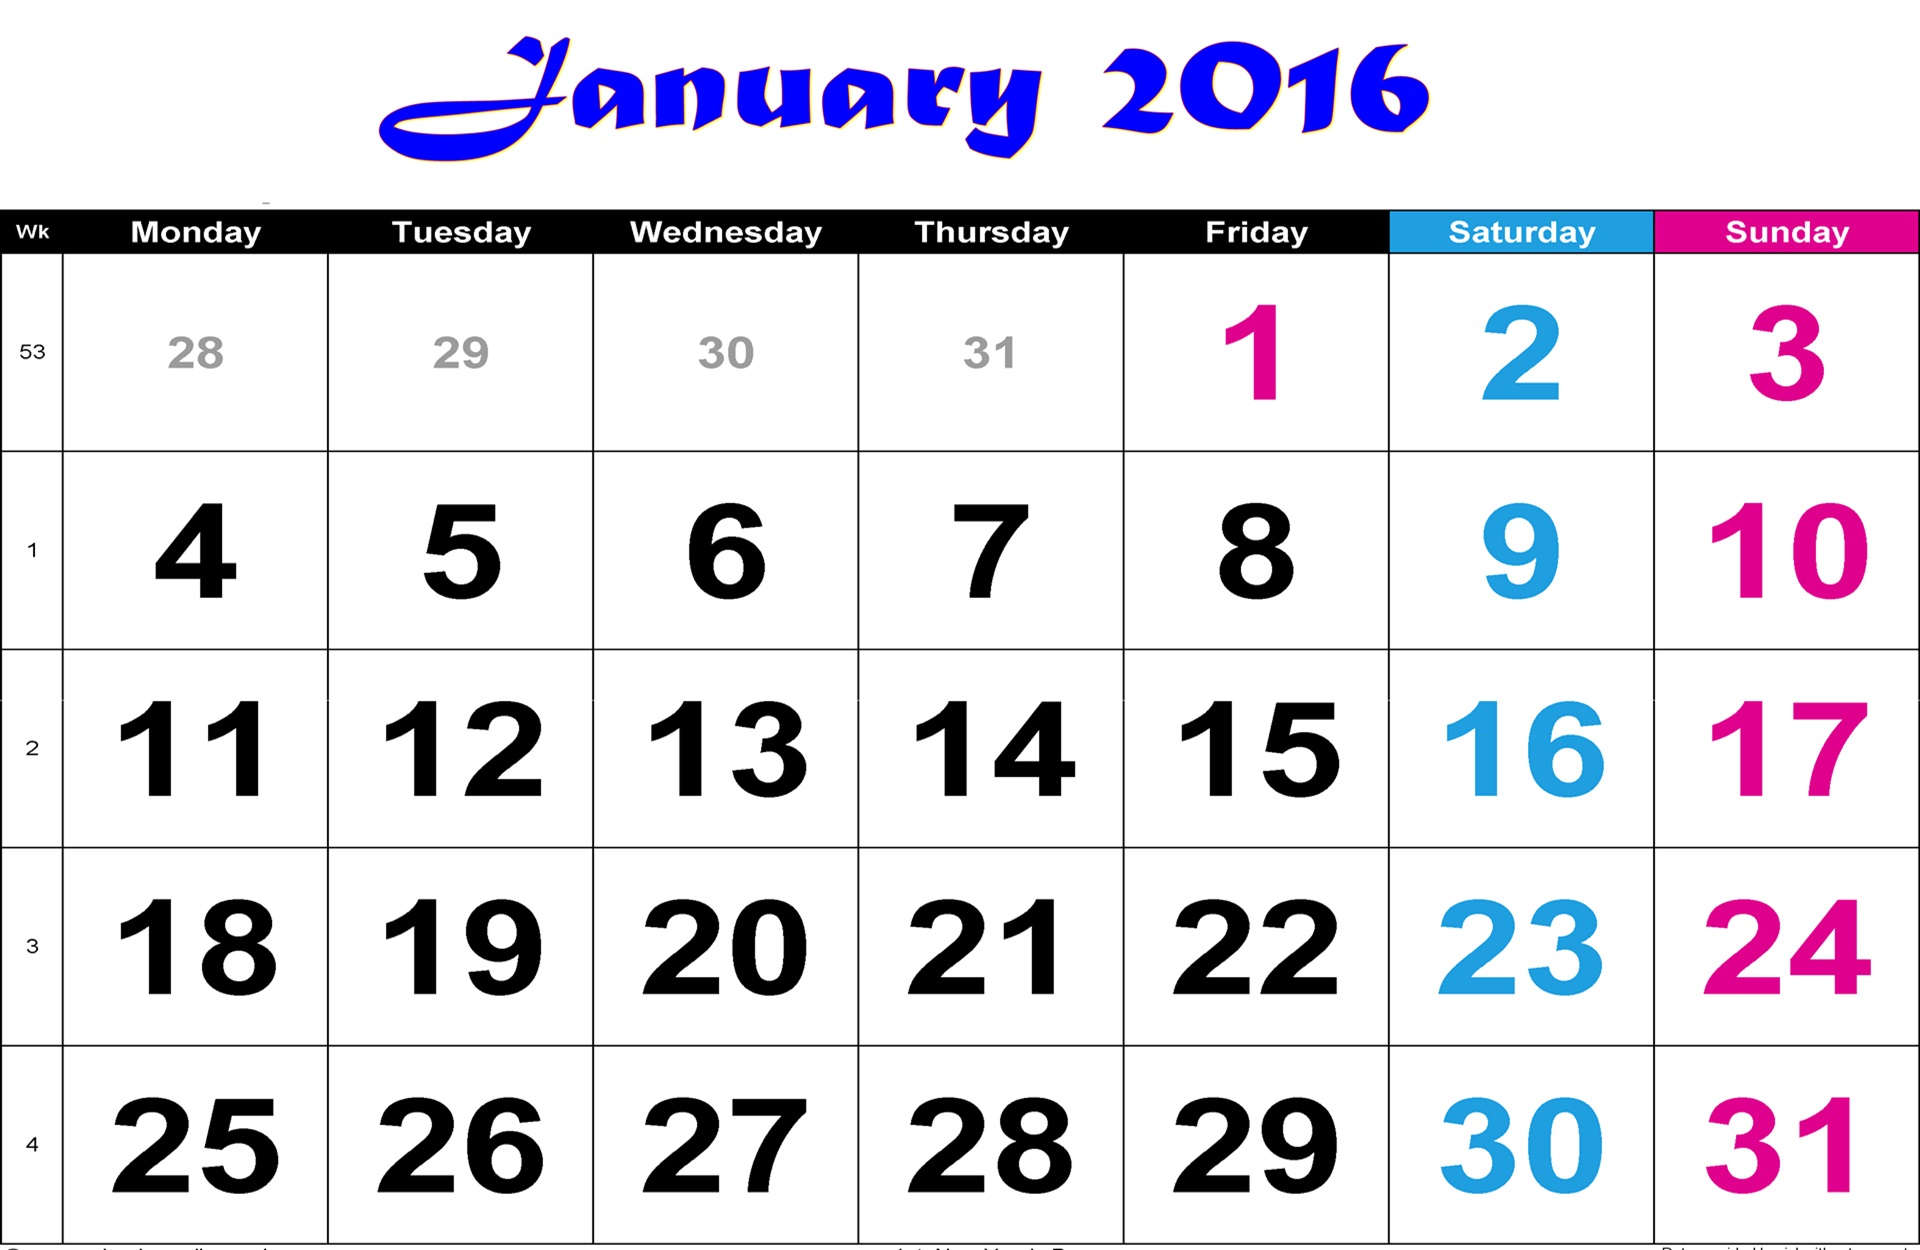 January 2016 Calendar Wallpaper   HD Wallpapers Backgrounds of Your 1920x1250